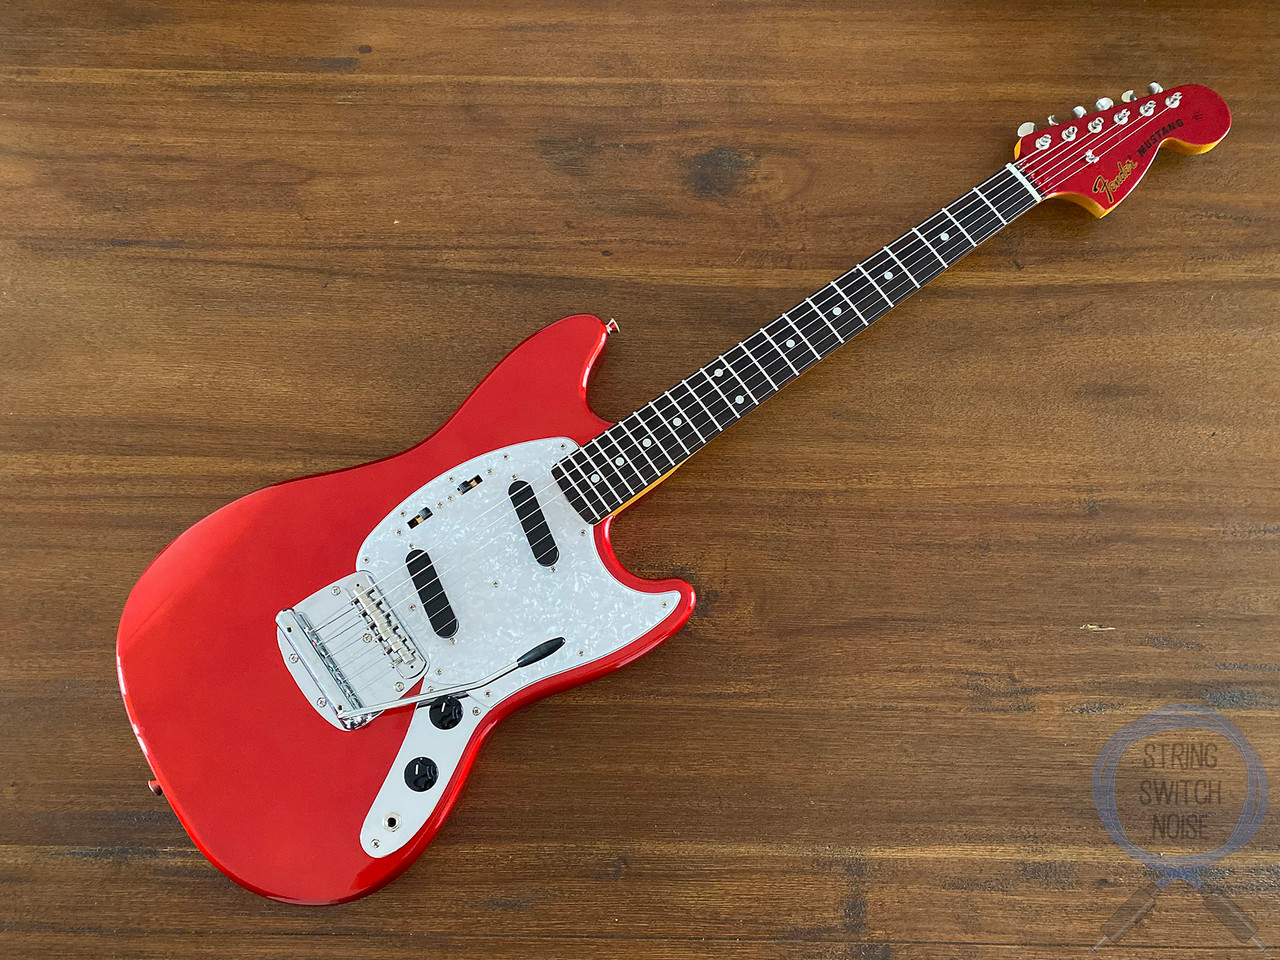 Fender Mustang, '69, Matching Headstock, Candy Apple Red, 2016